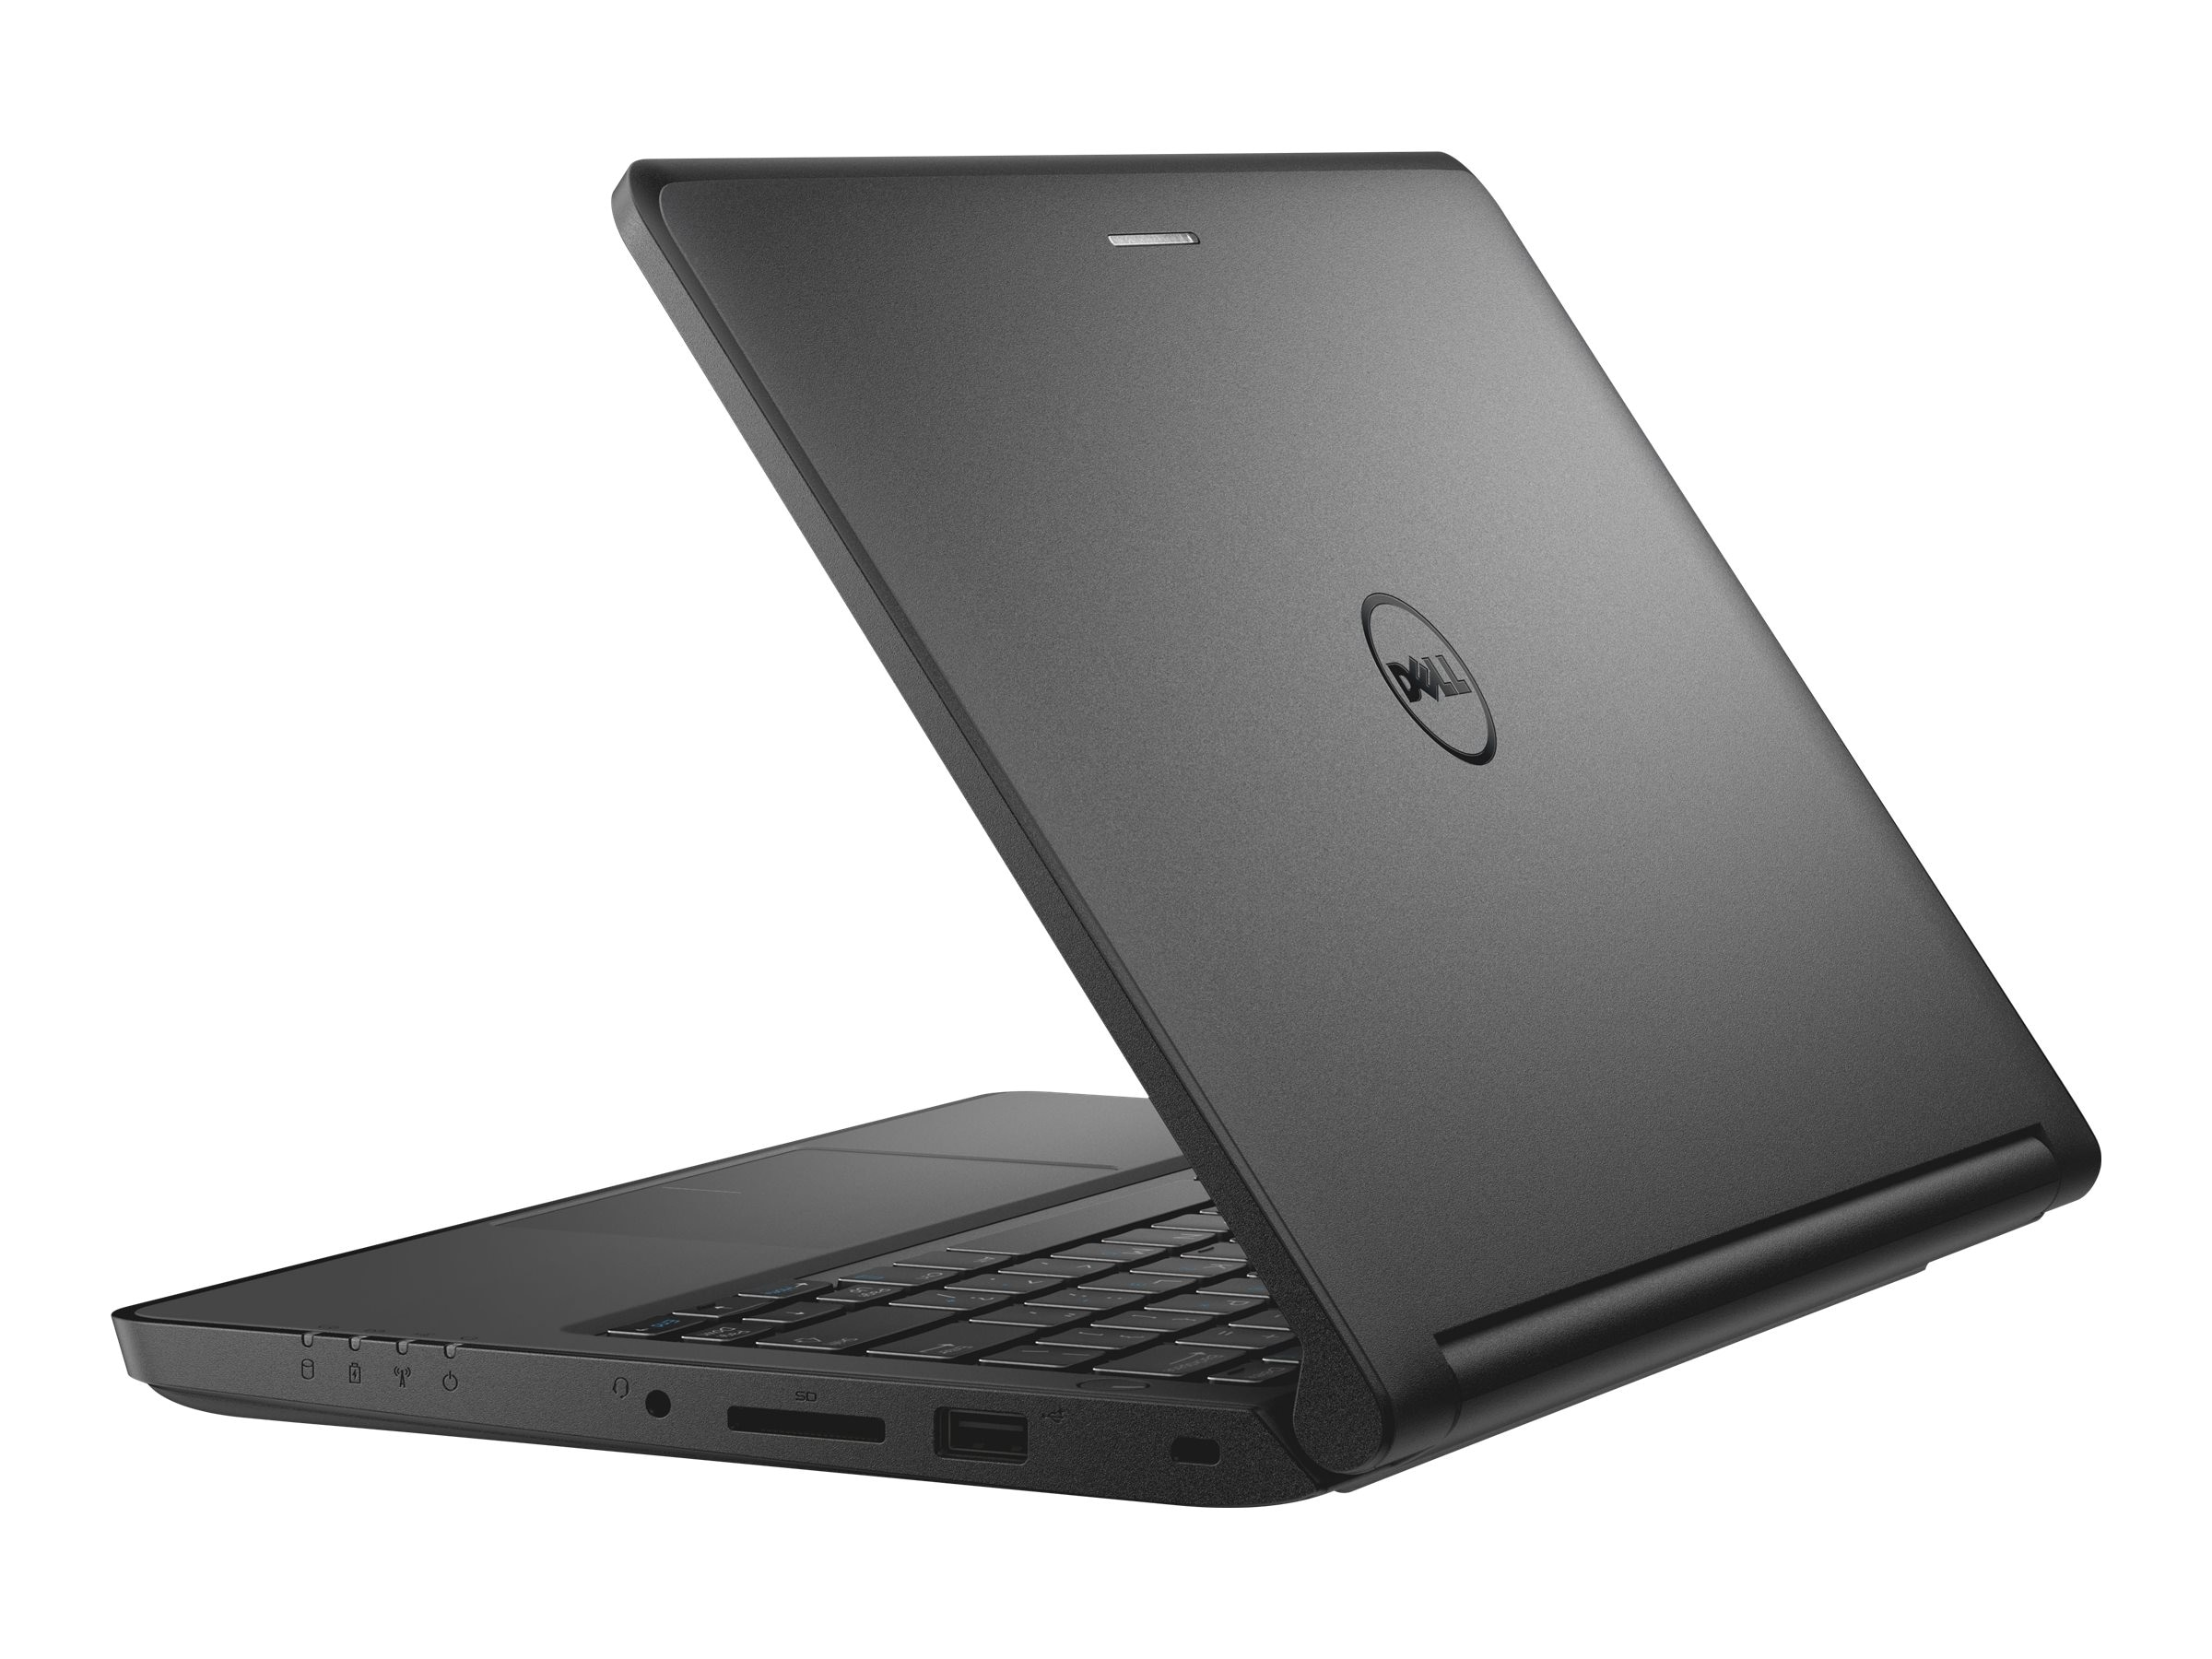 Dell LAT3160-1333BLK Image 5